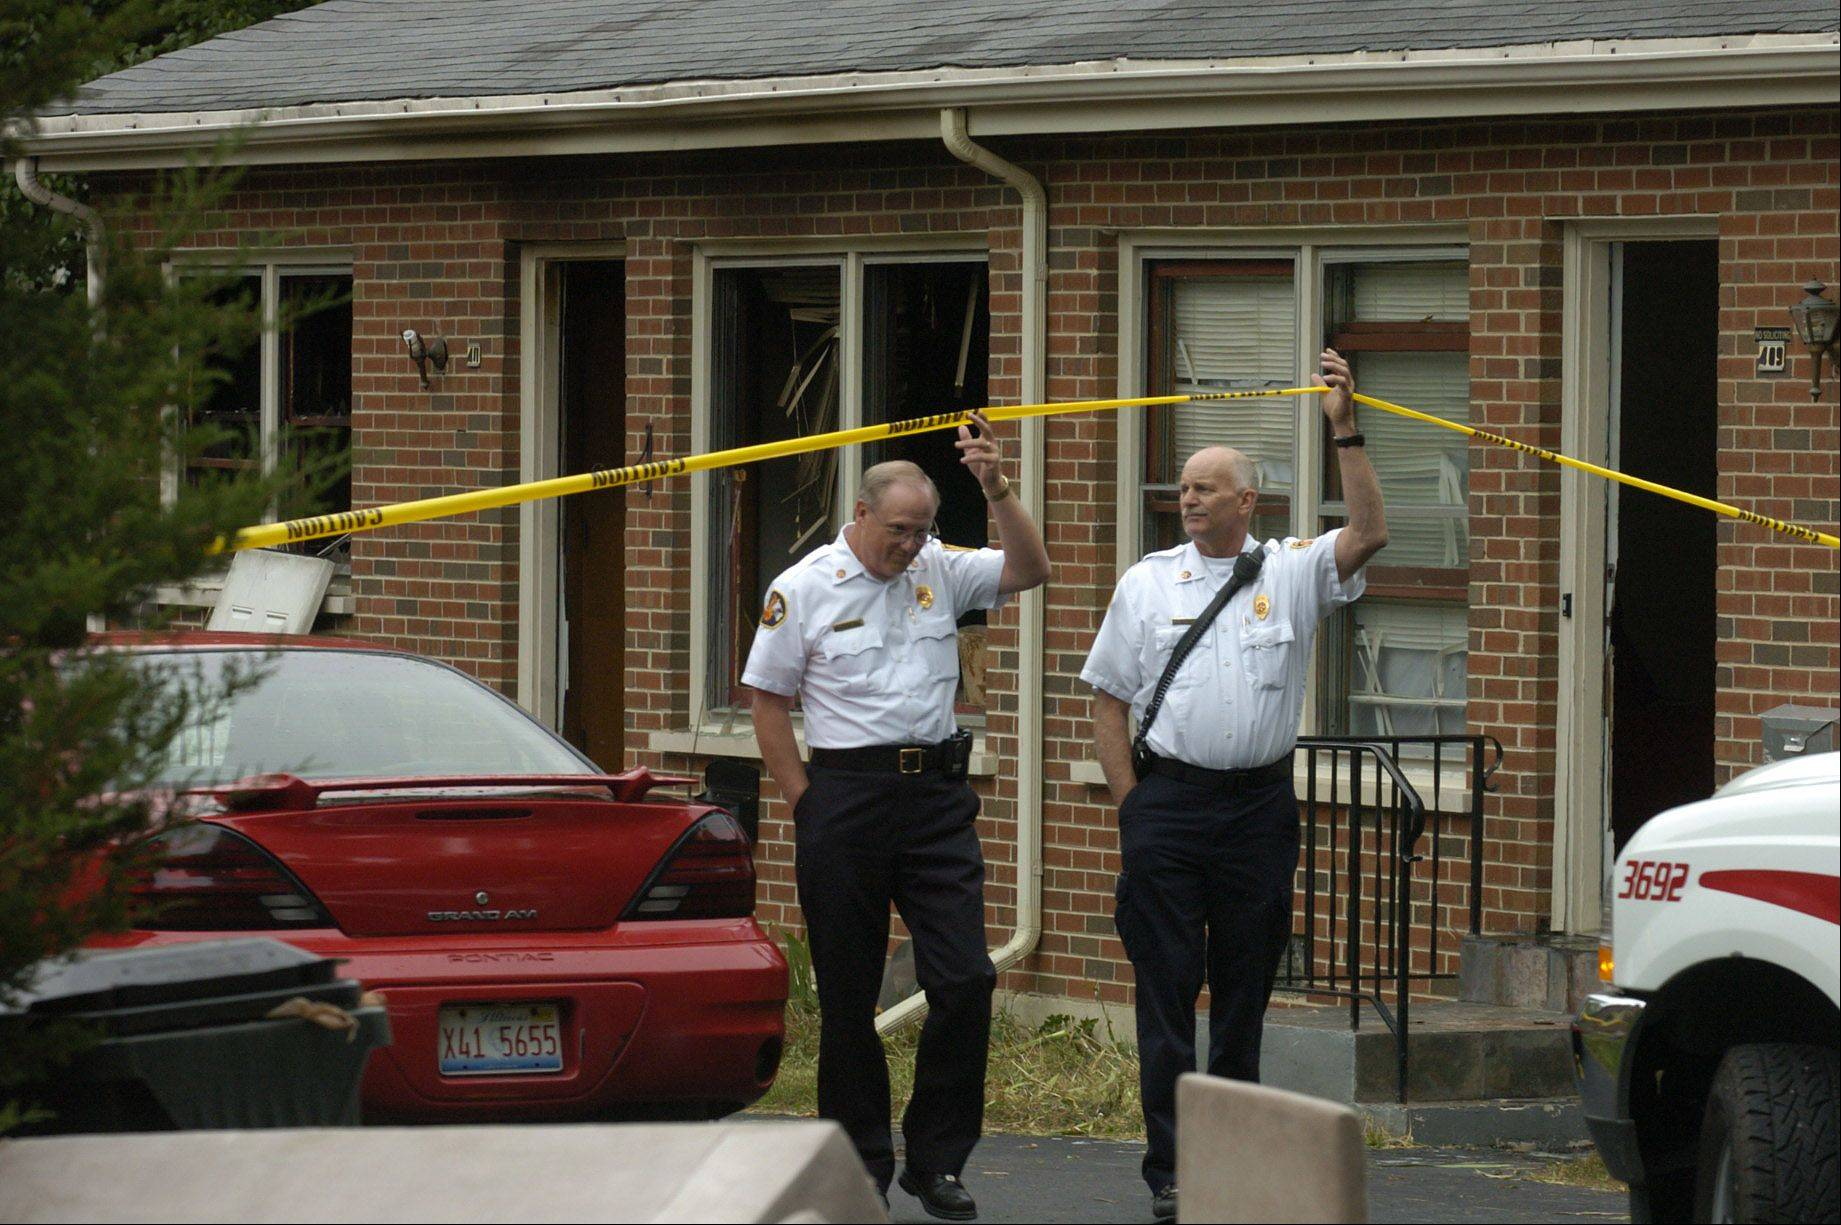 Authorities investigate a fatal fire on the 400 block of June Terrace in Barrington on Friday. The victim was identified as 52-year-old Richard Sowa.